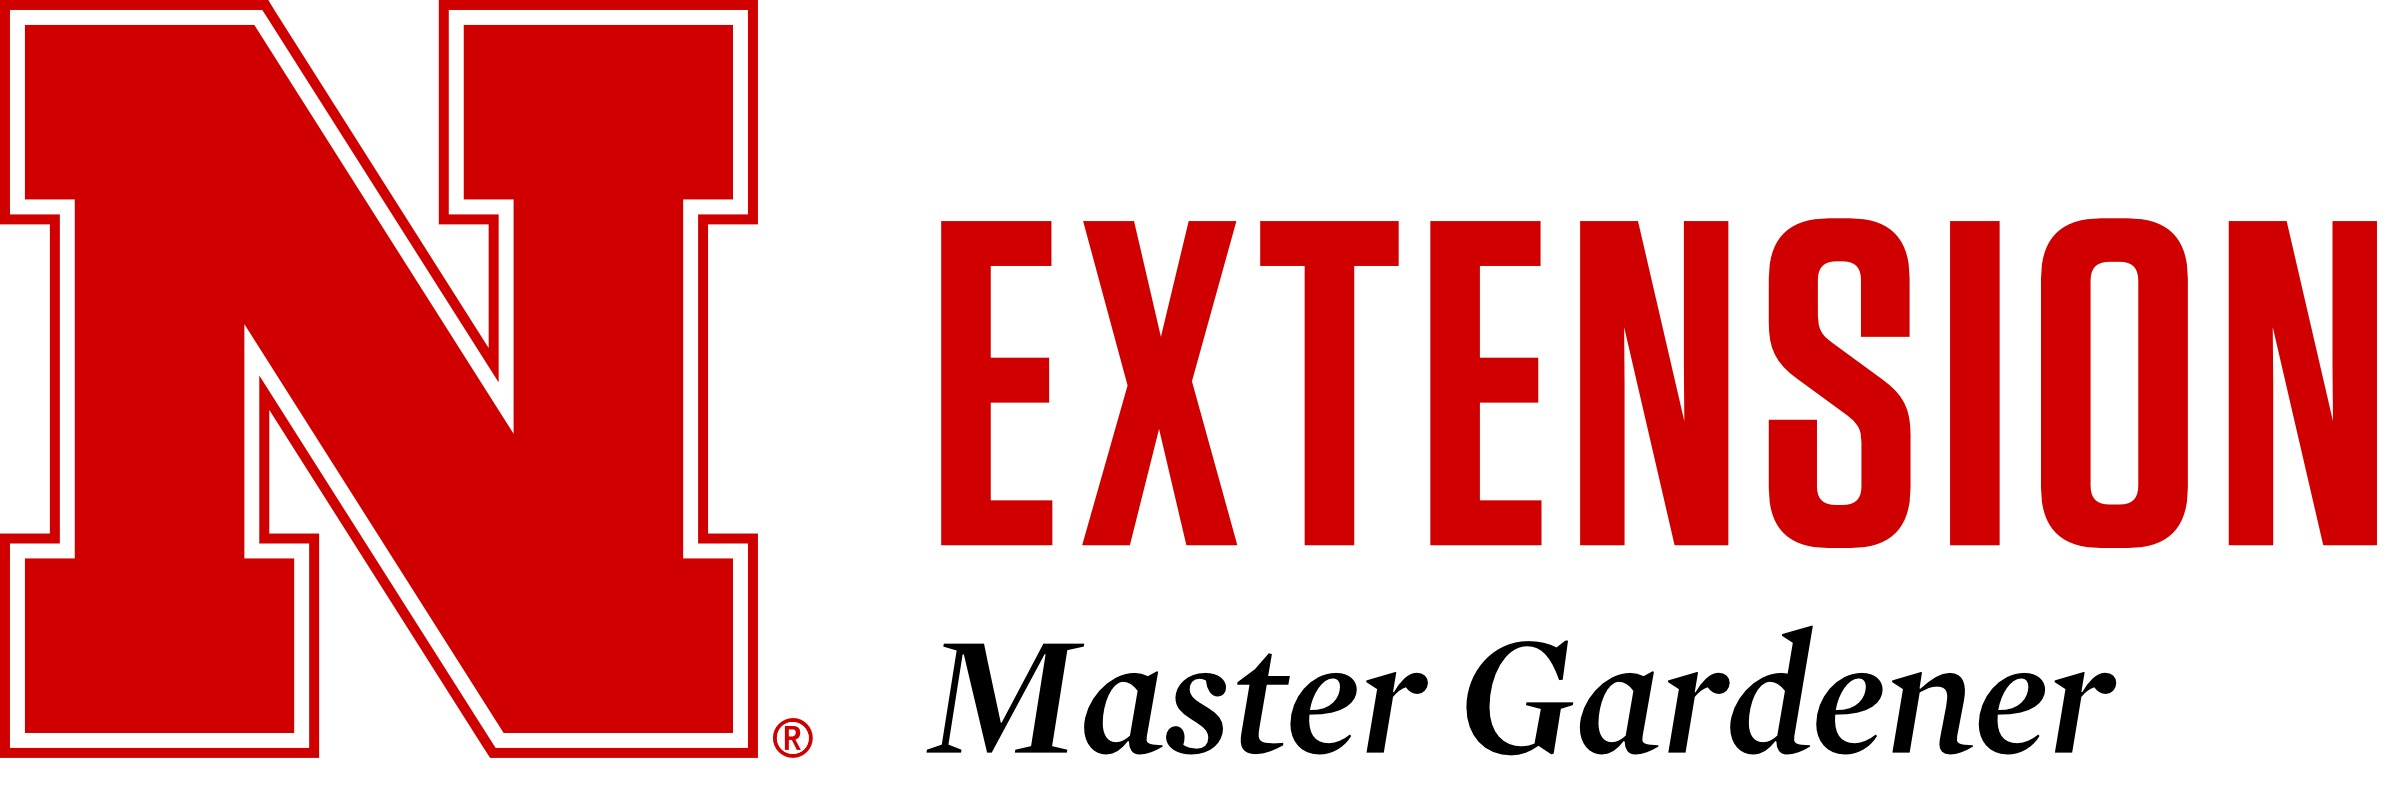 Nh_EXTENSION_Master_Gardener_RGB